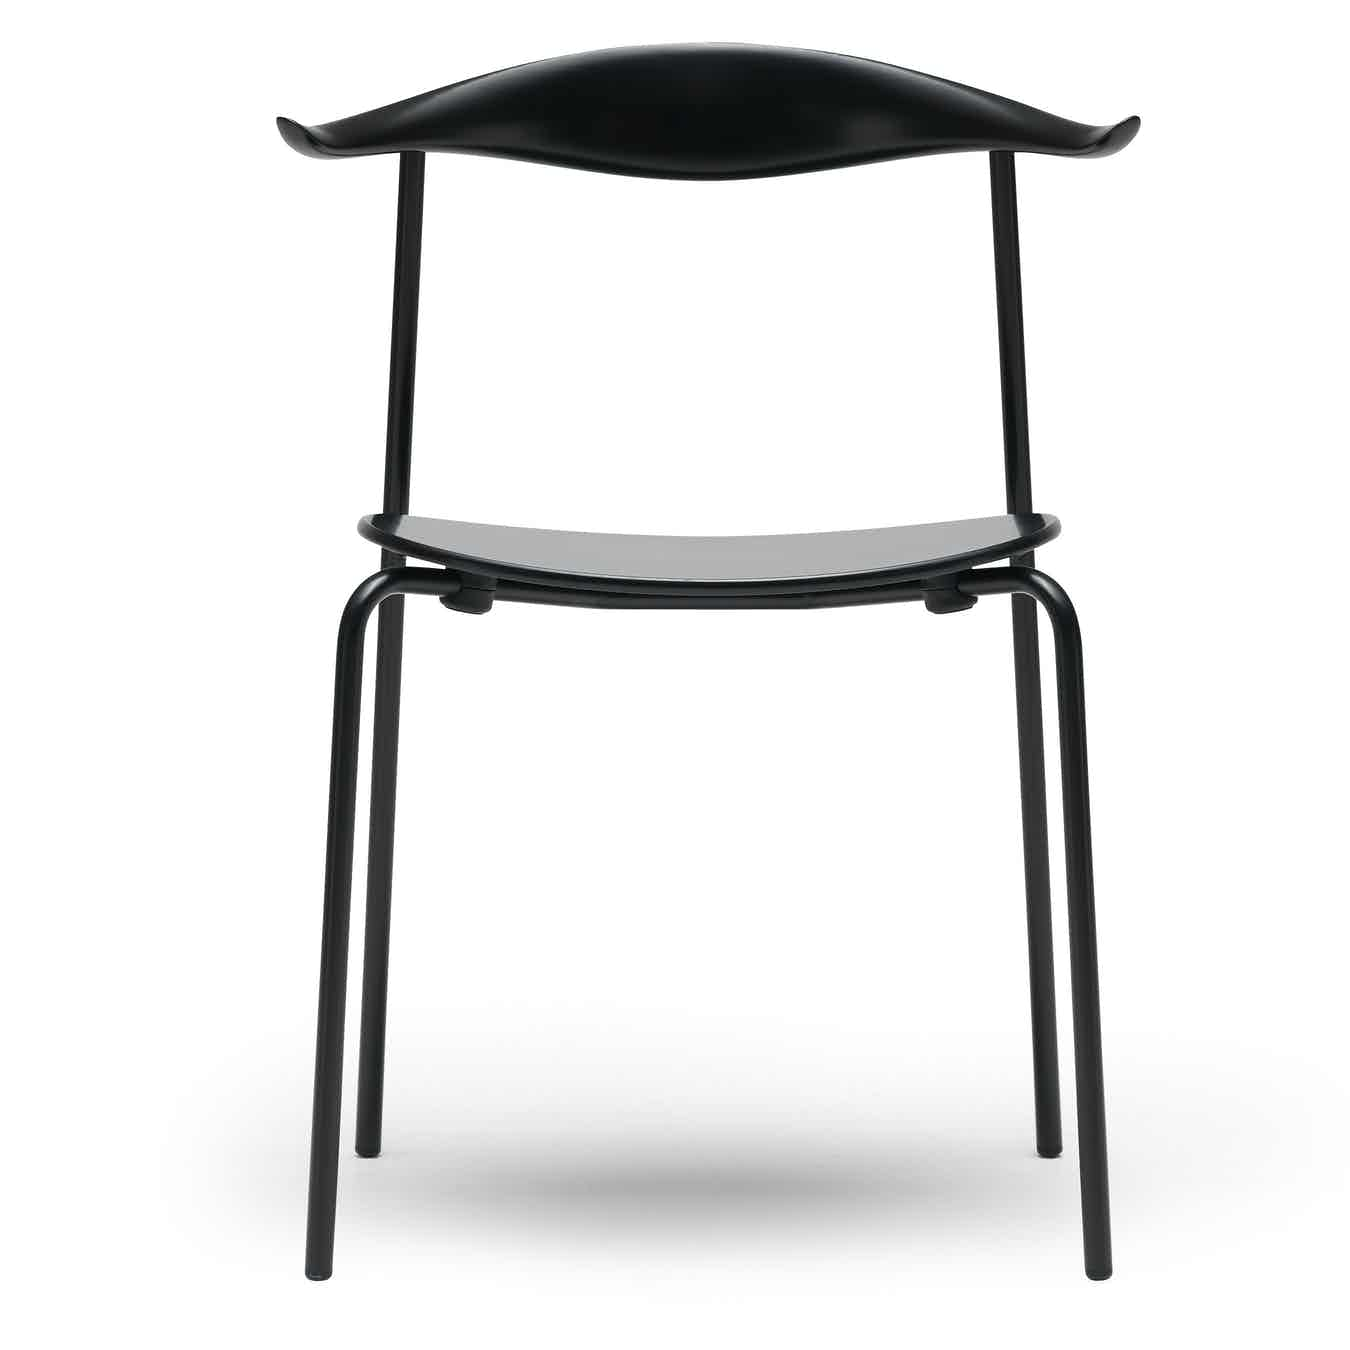 Carl-hansen-son-front-black-ch88-haute-living